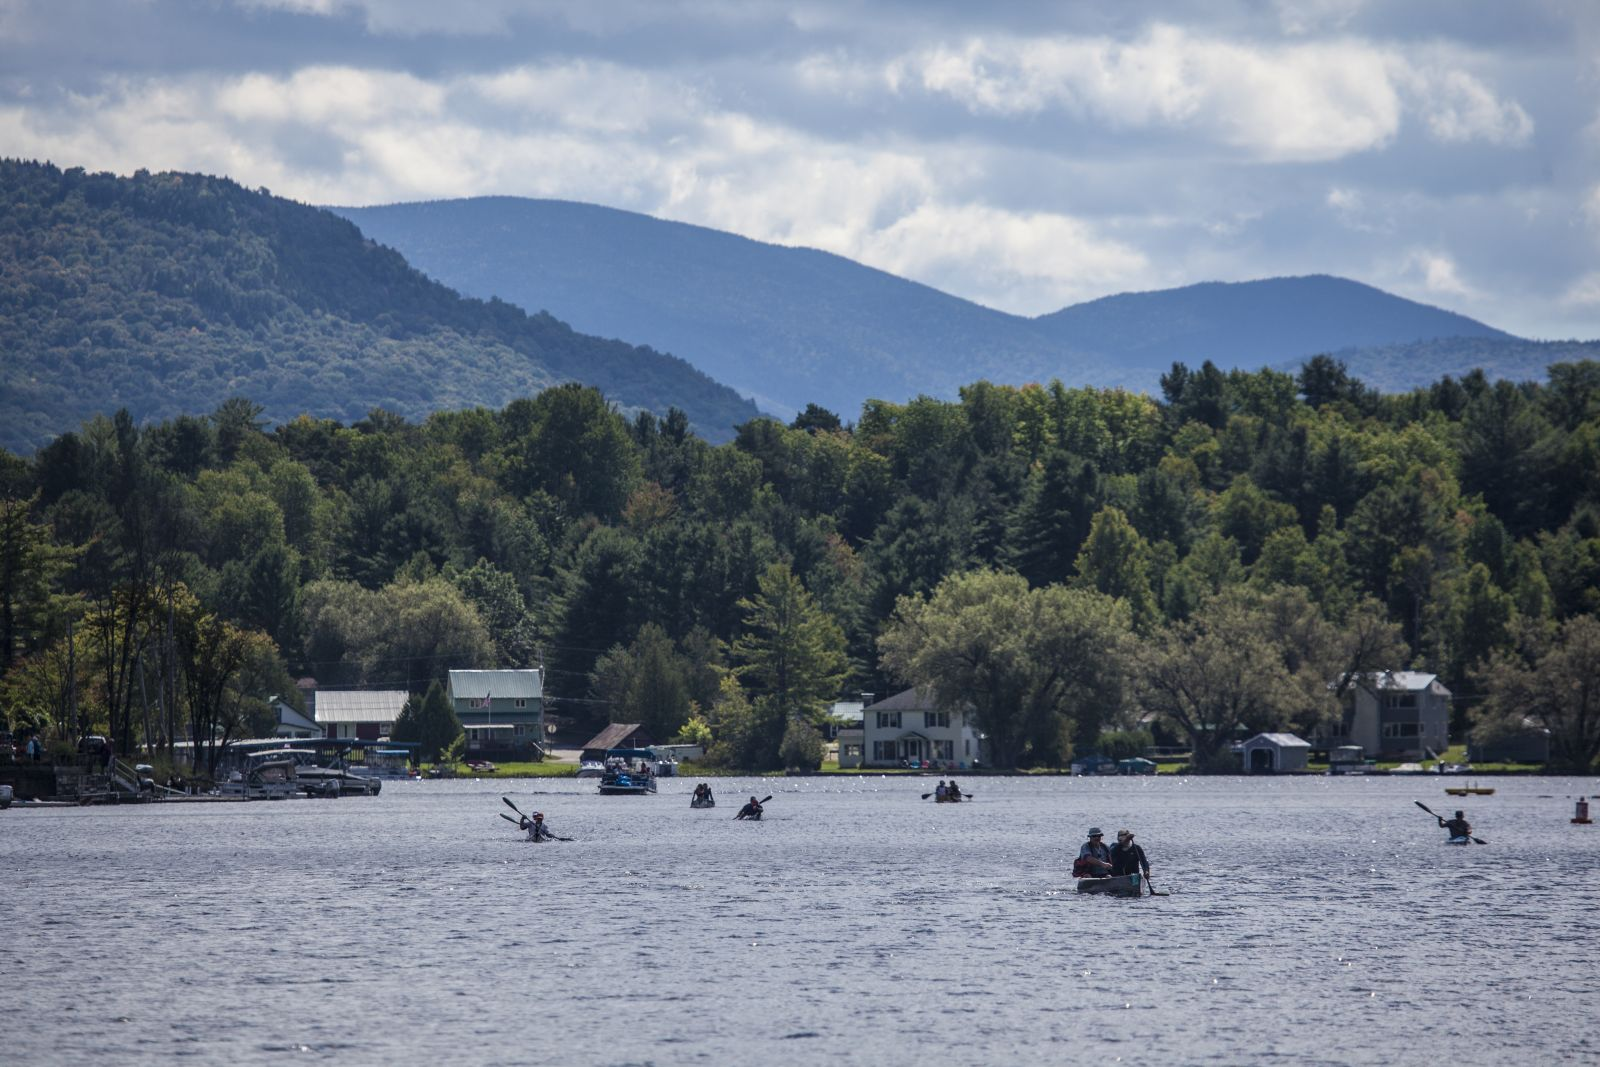 Young, old, and everyone in between - this race is truly an Adirondack tradition!